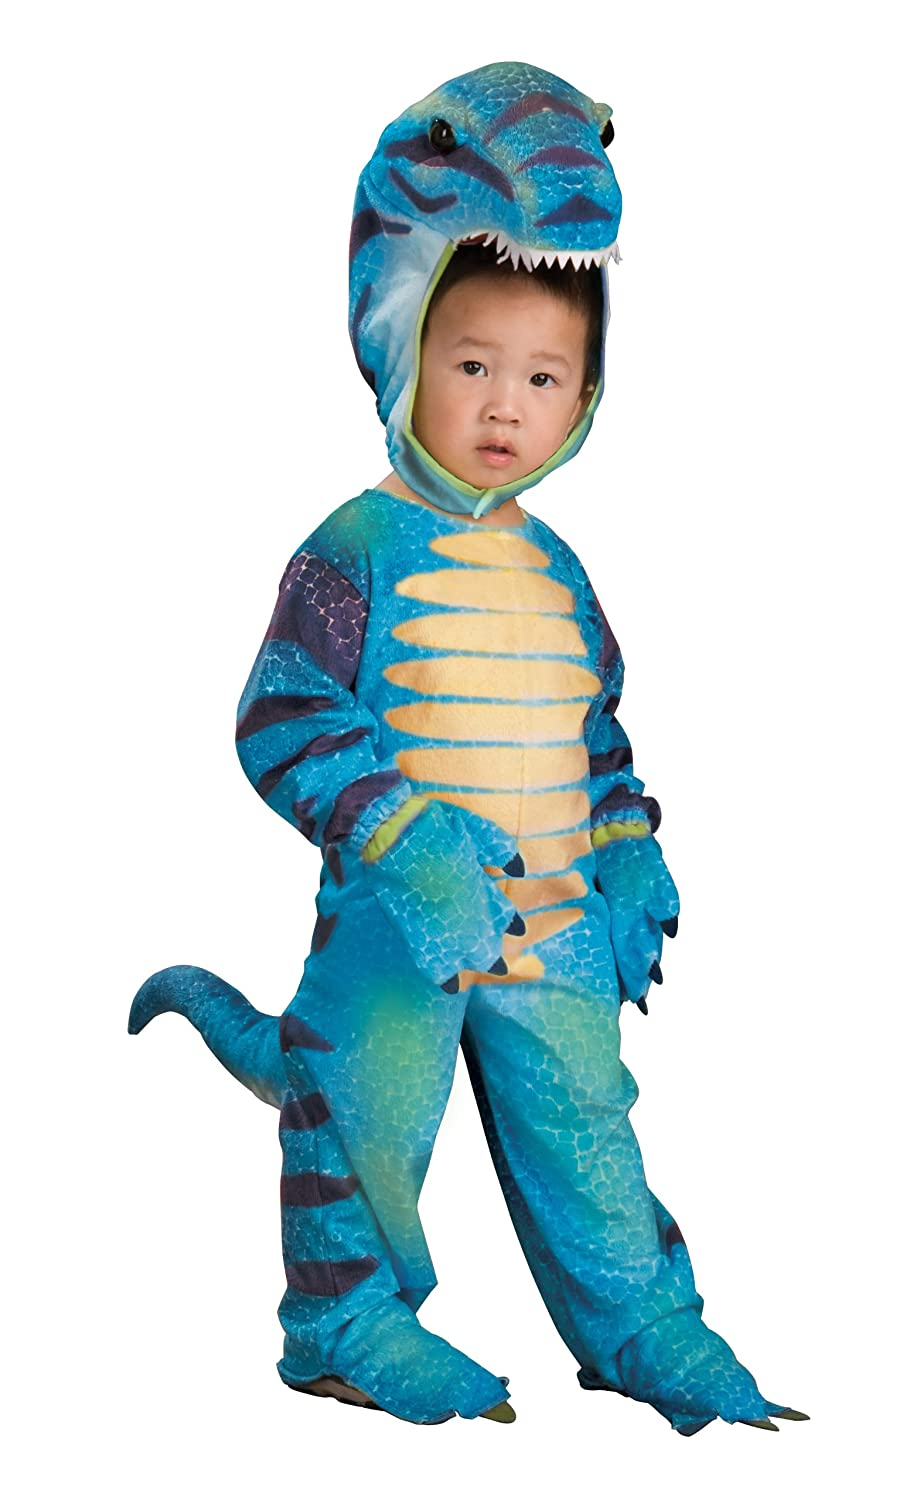 Amazon.com Silly Safari Costume Cutiesaurus Costume Toddler(1 to 2 Years) Toys u0026 Games  sc 1 st  Amazon.com & Amazon.com: Silly Safari Costume Cutiesaurus Costume Toddler(1 to ...